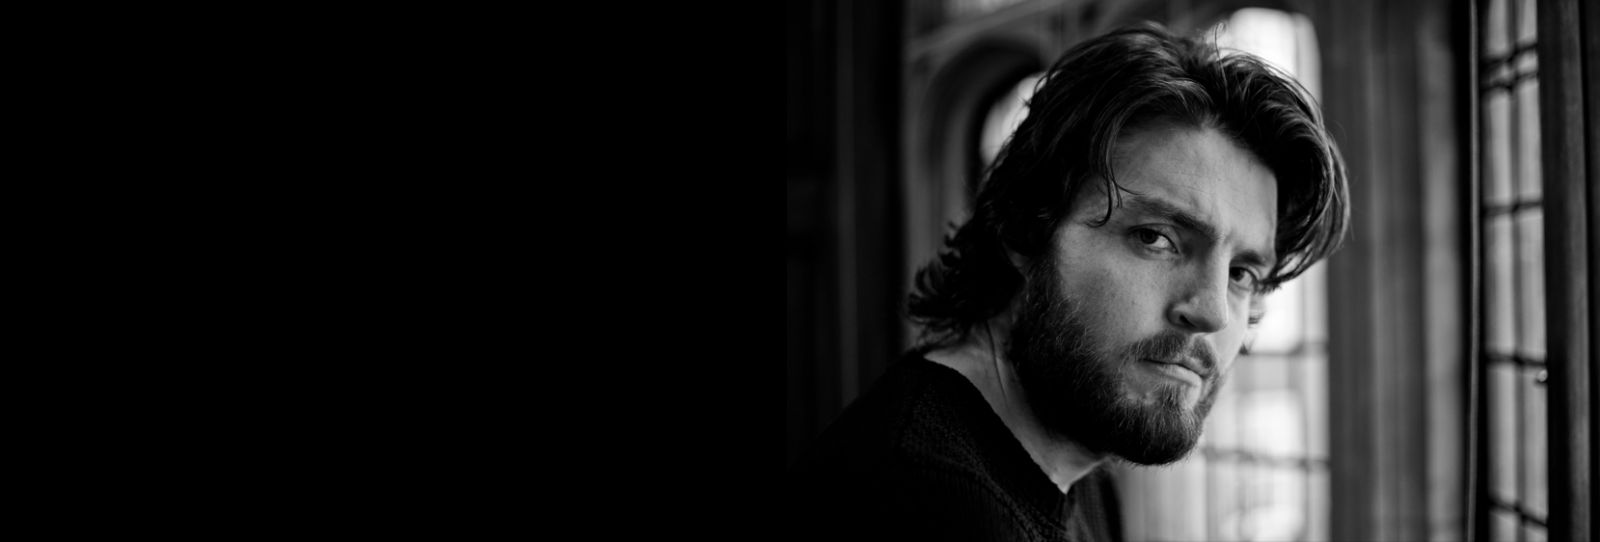 Tom Burke to Star in Don Carlos as part of the Rose's 10th Anniversary Season